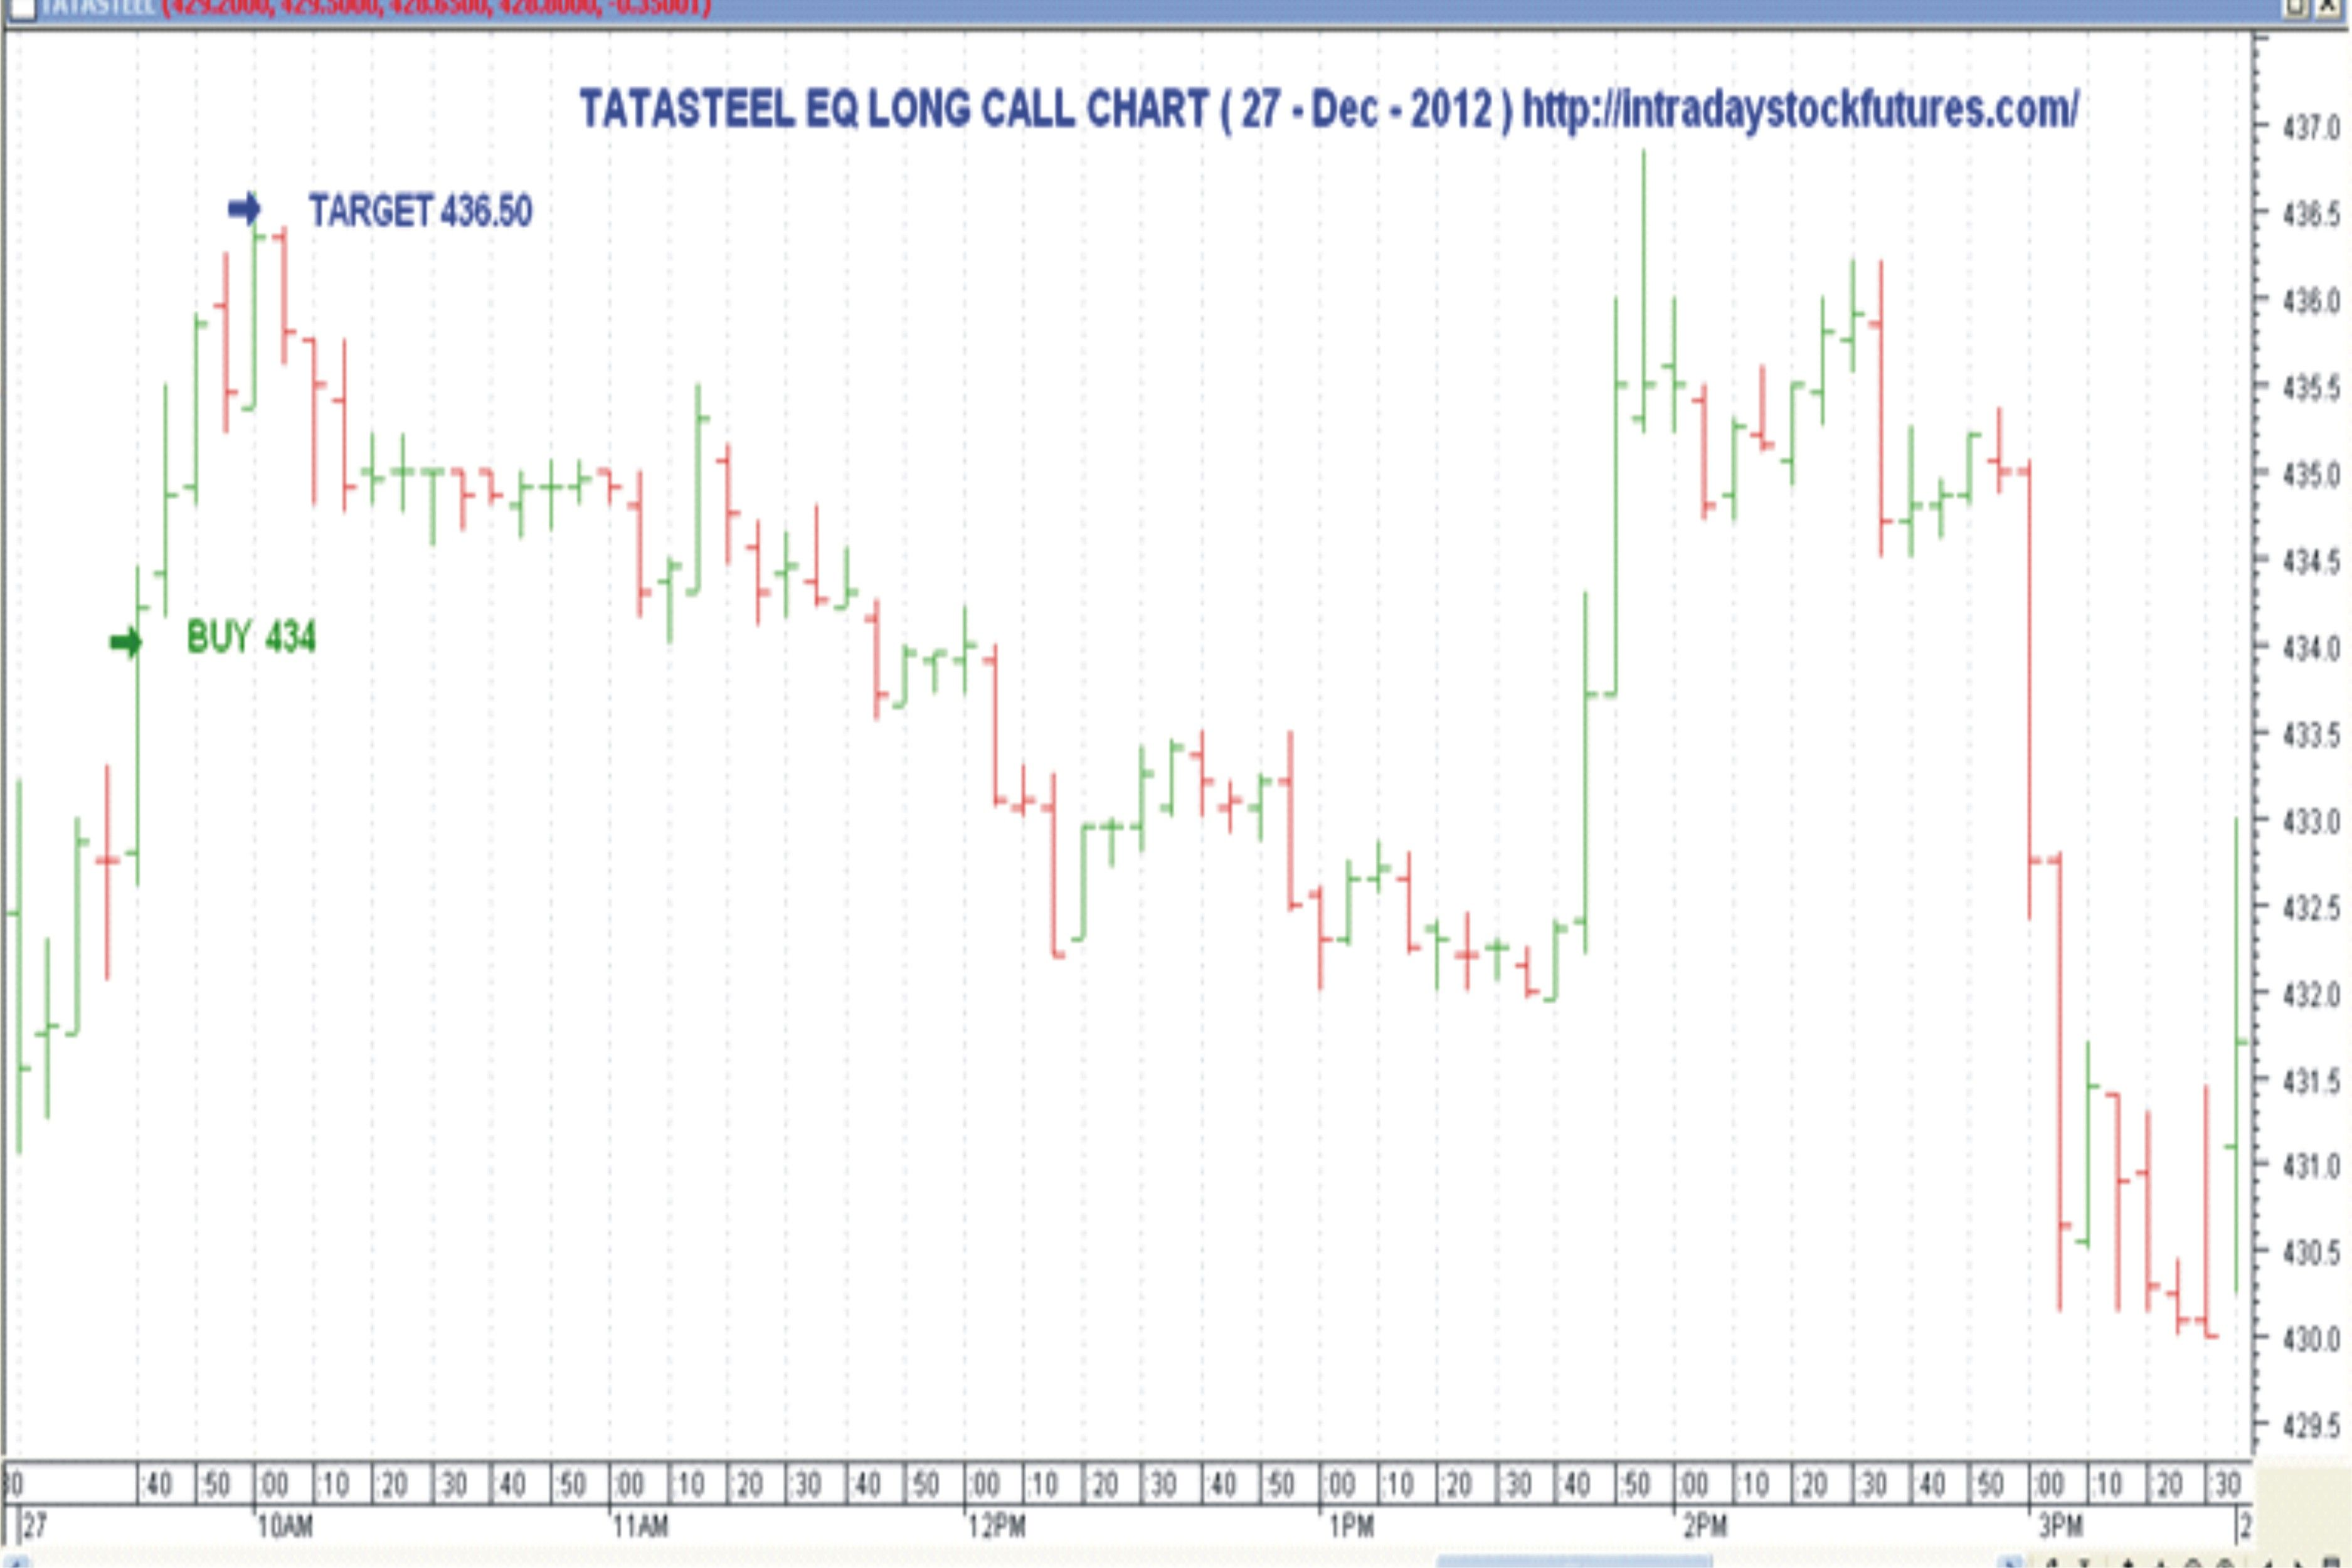 Tatasteel Eq Bought 434 Target 436 50 Reached Profit Rs 1425